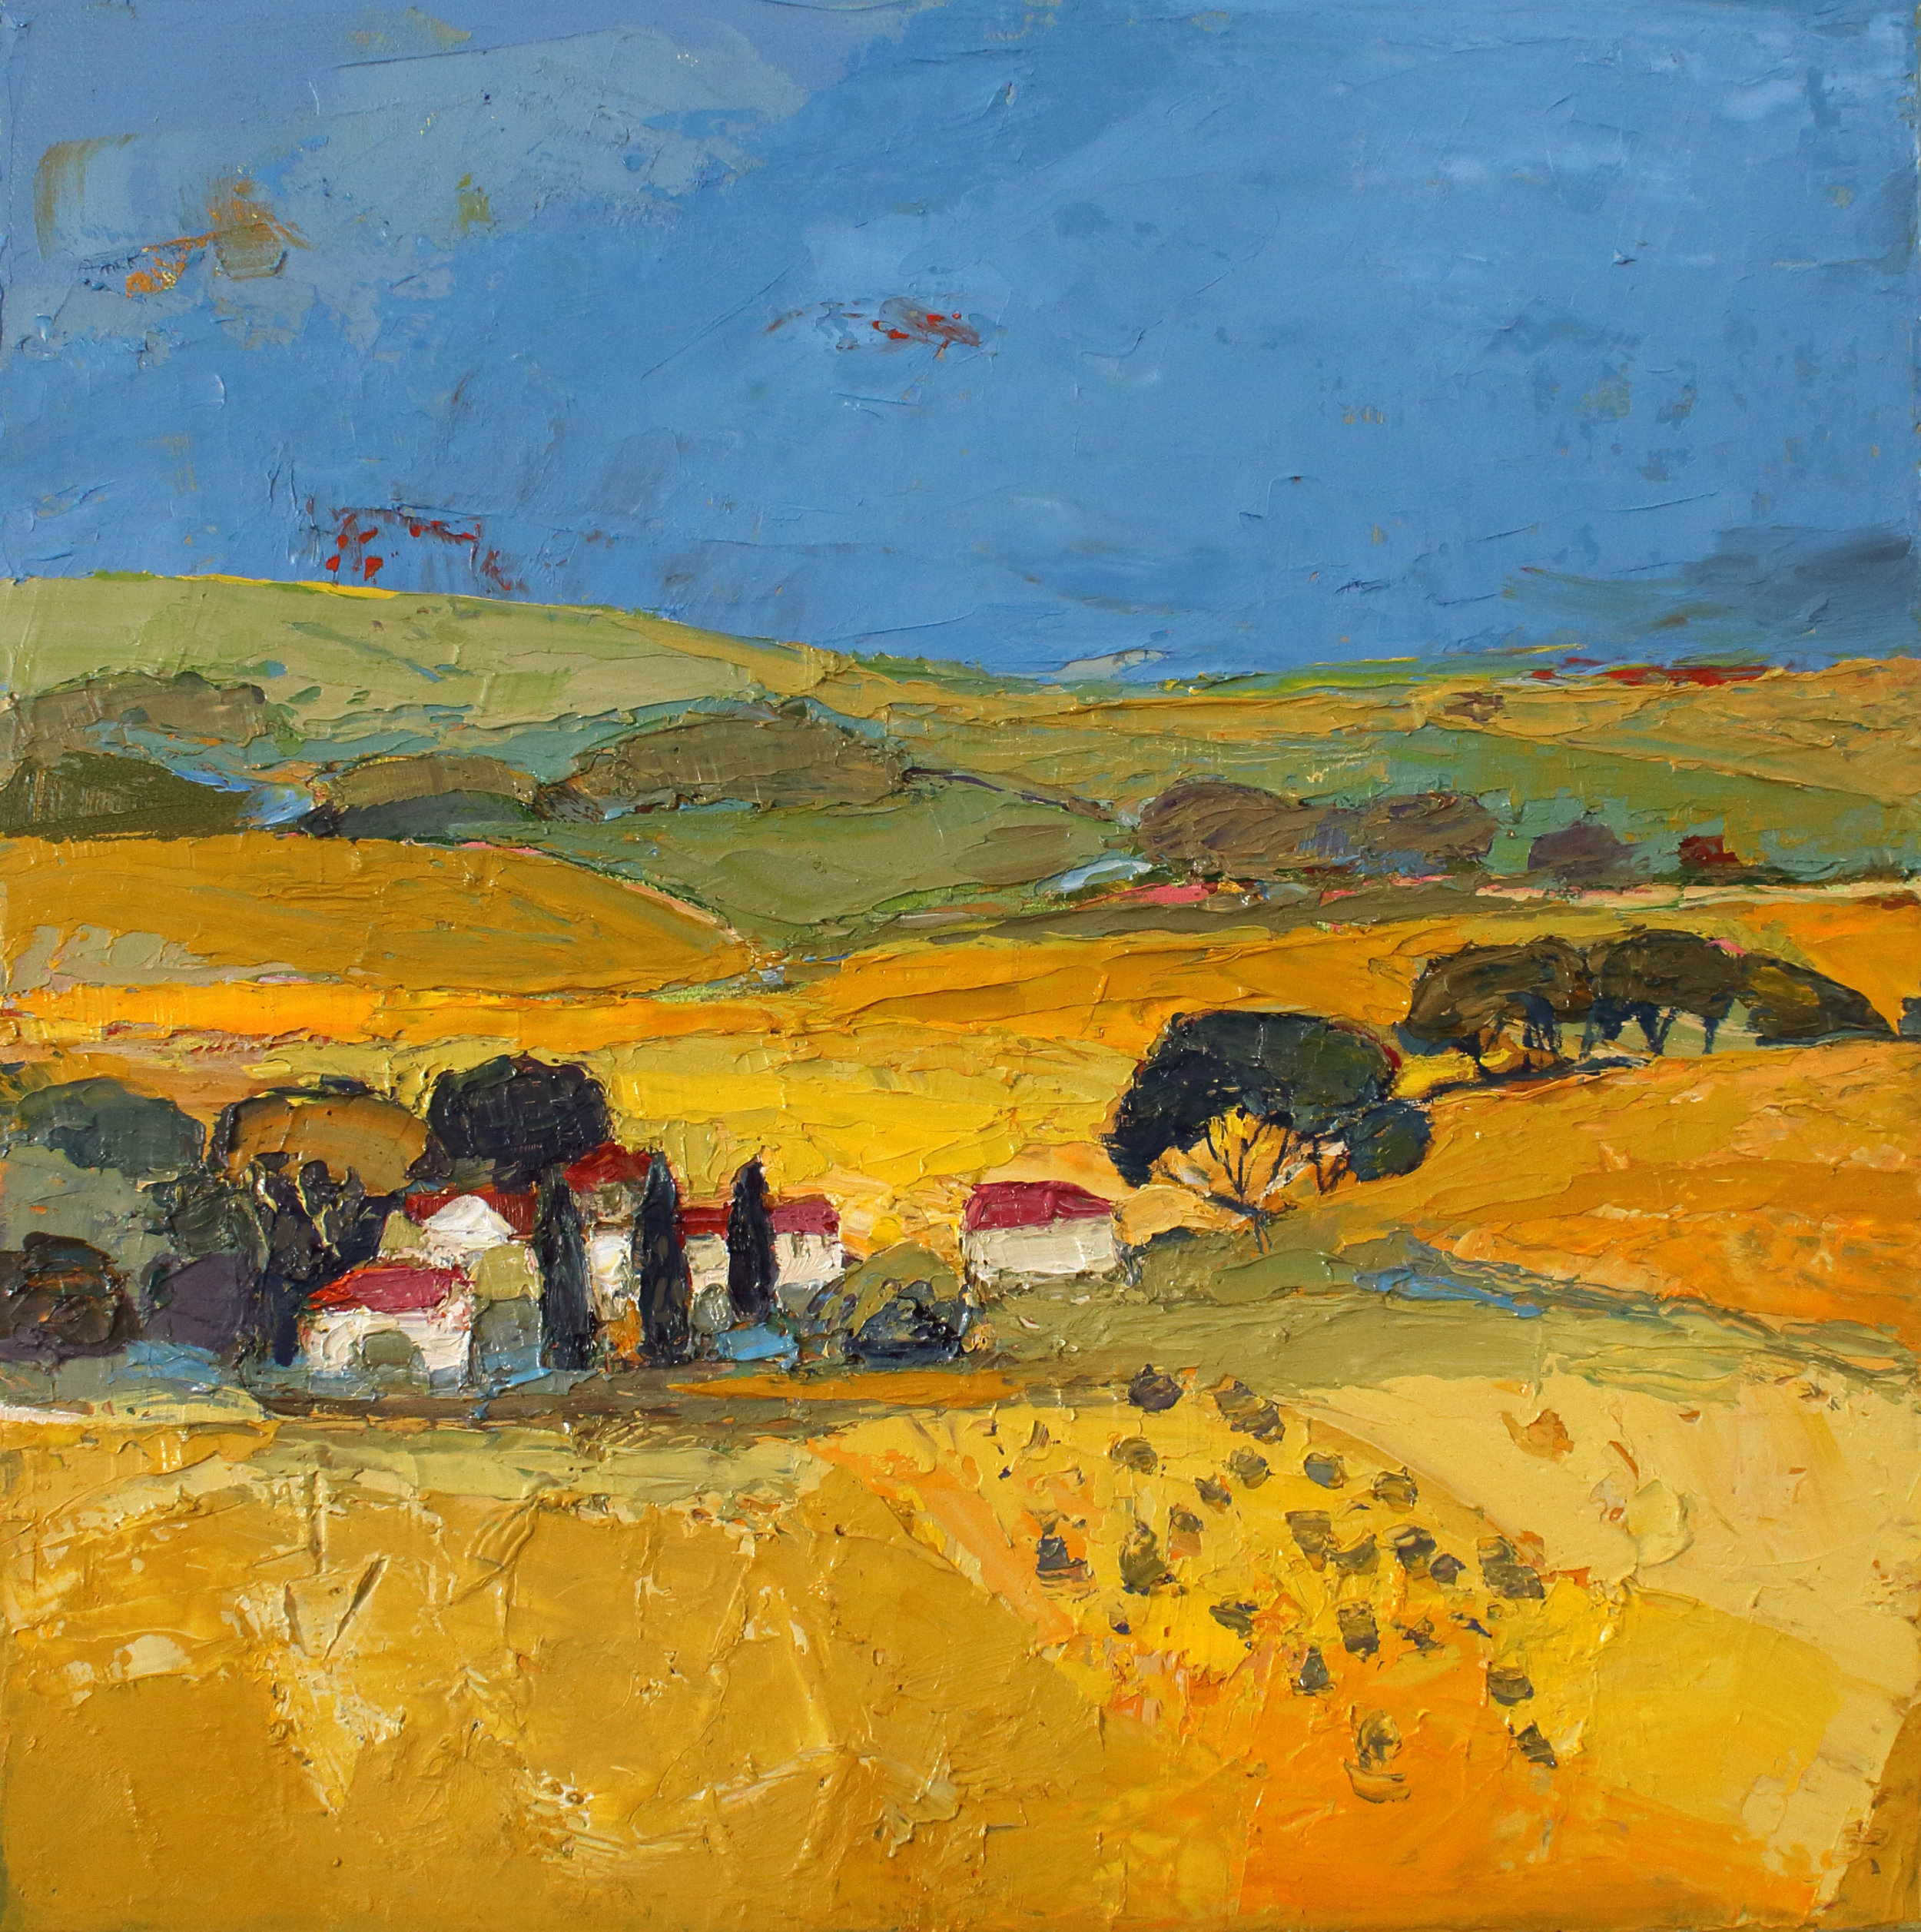 Title: Hay and Haze Size: 12 x 12 inches Medium: Oil on Canvas Price: £1700